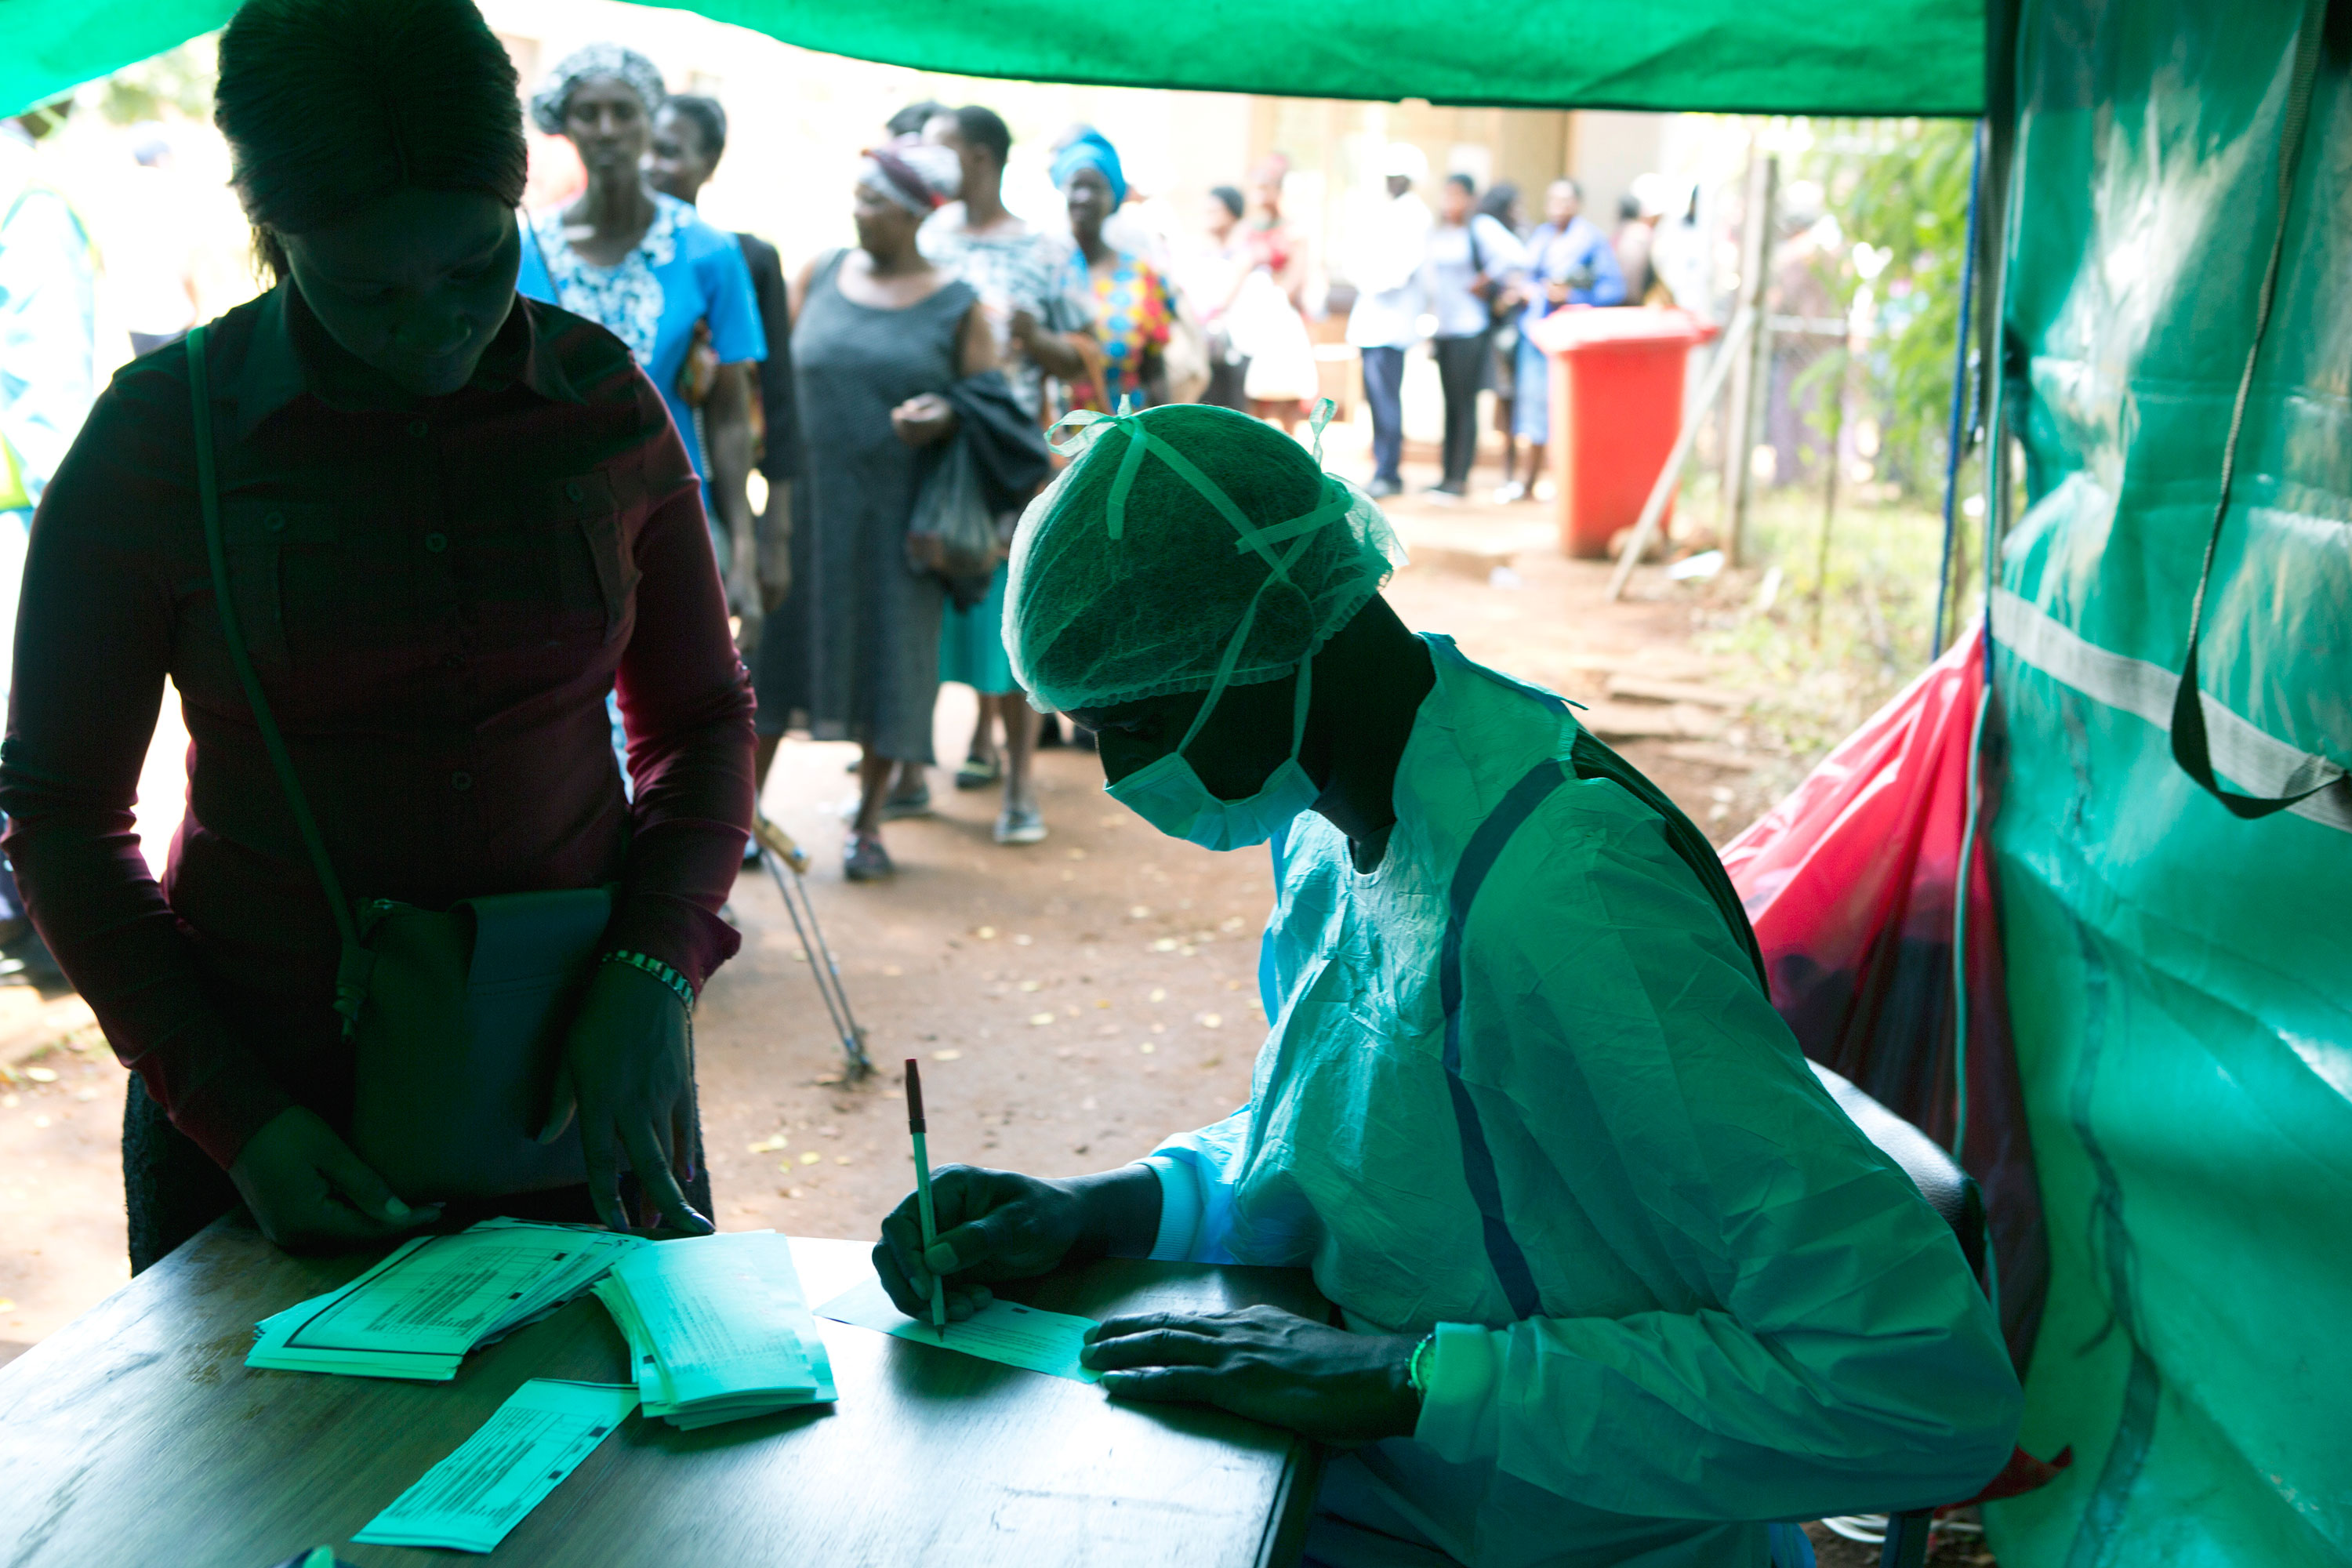 People wait in a queue to have their temperatures taken by health workers before entering a public hospital, in Harare, Zimbabwe, Saturday, March 21, 2020. (AP Photo/Tsvangirayi Mukwazhi)